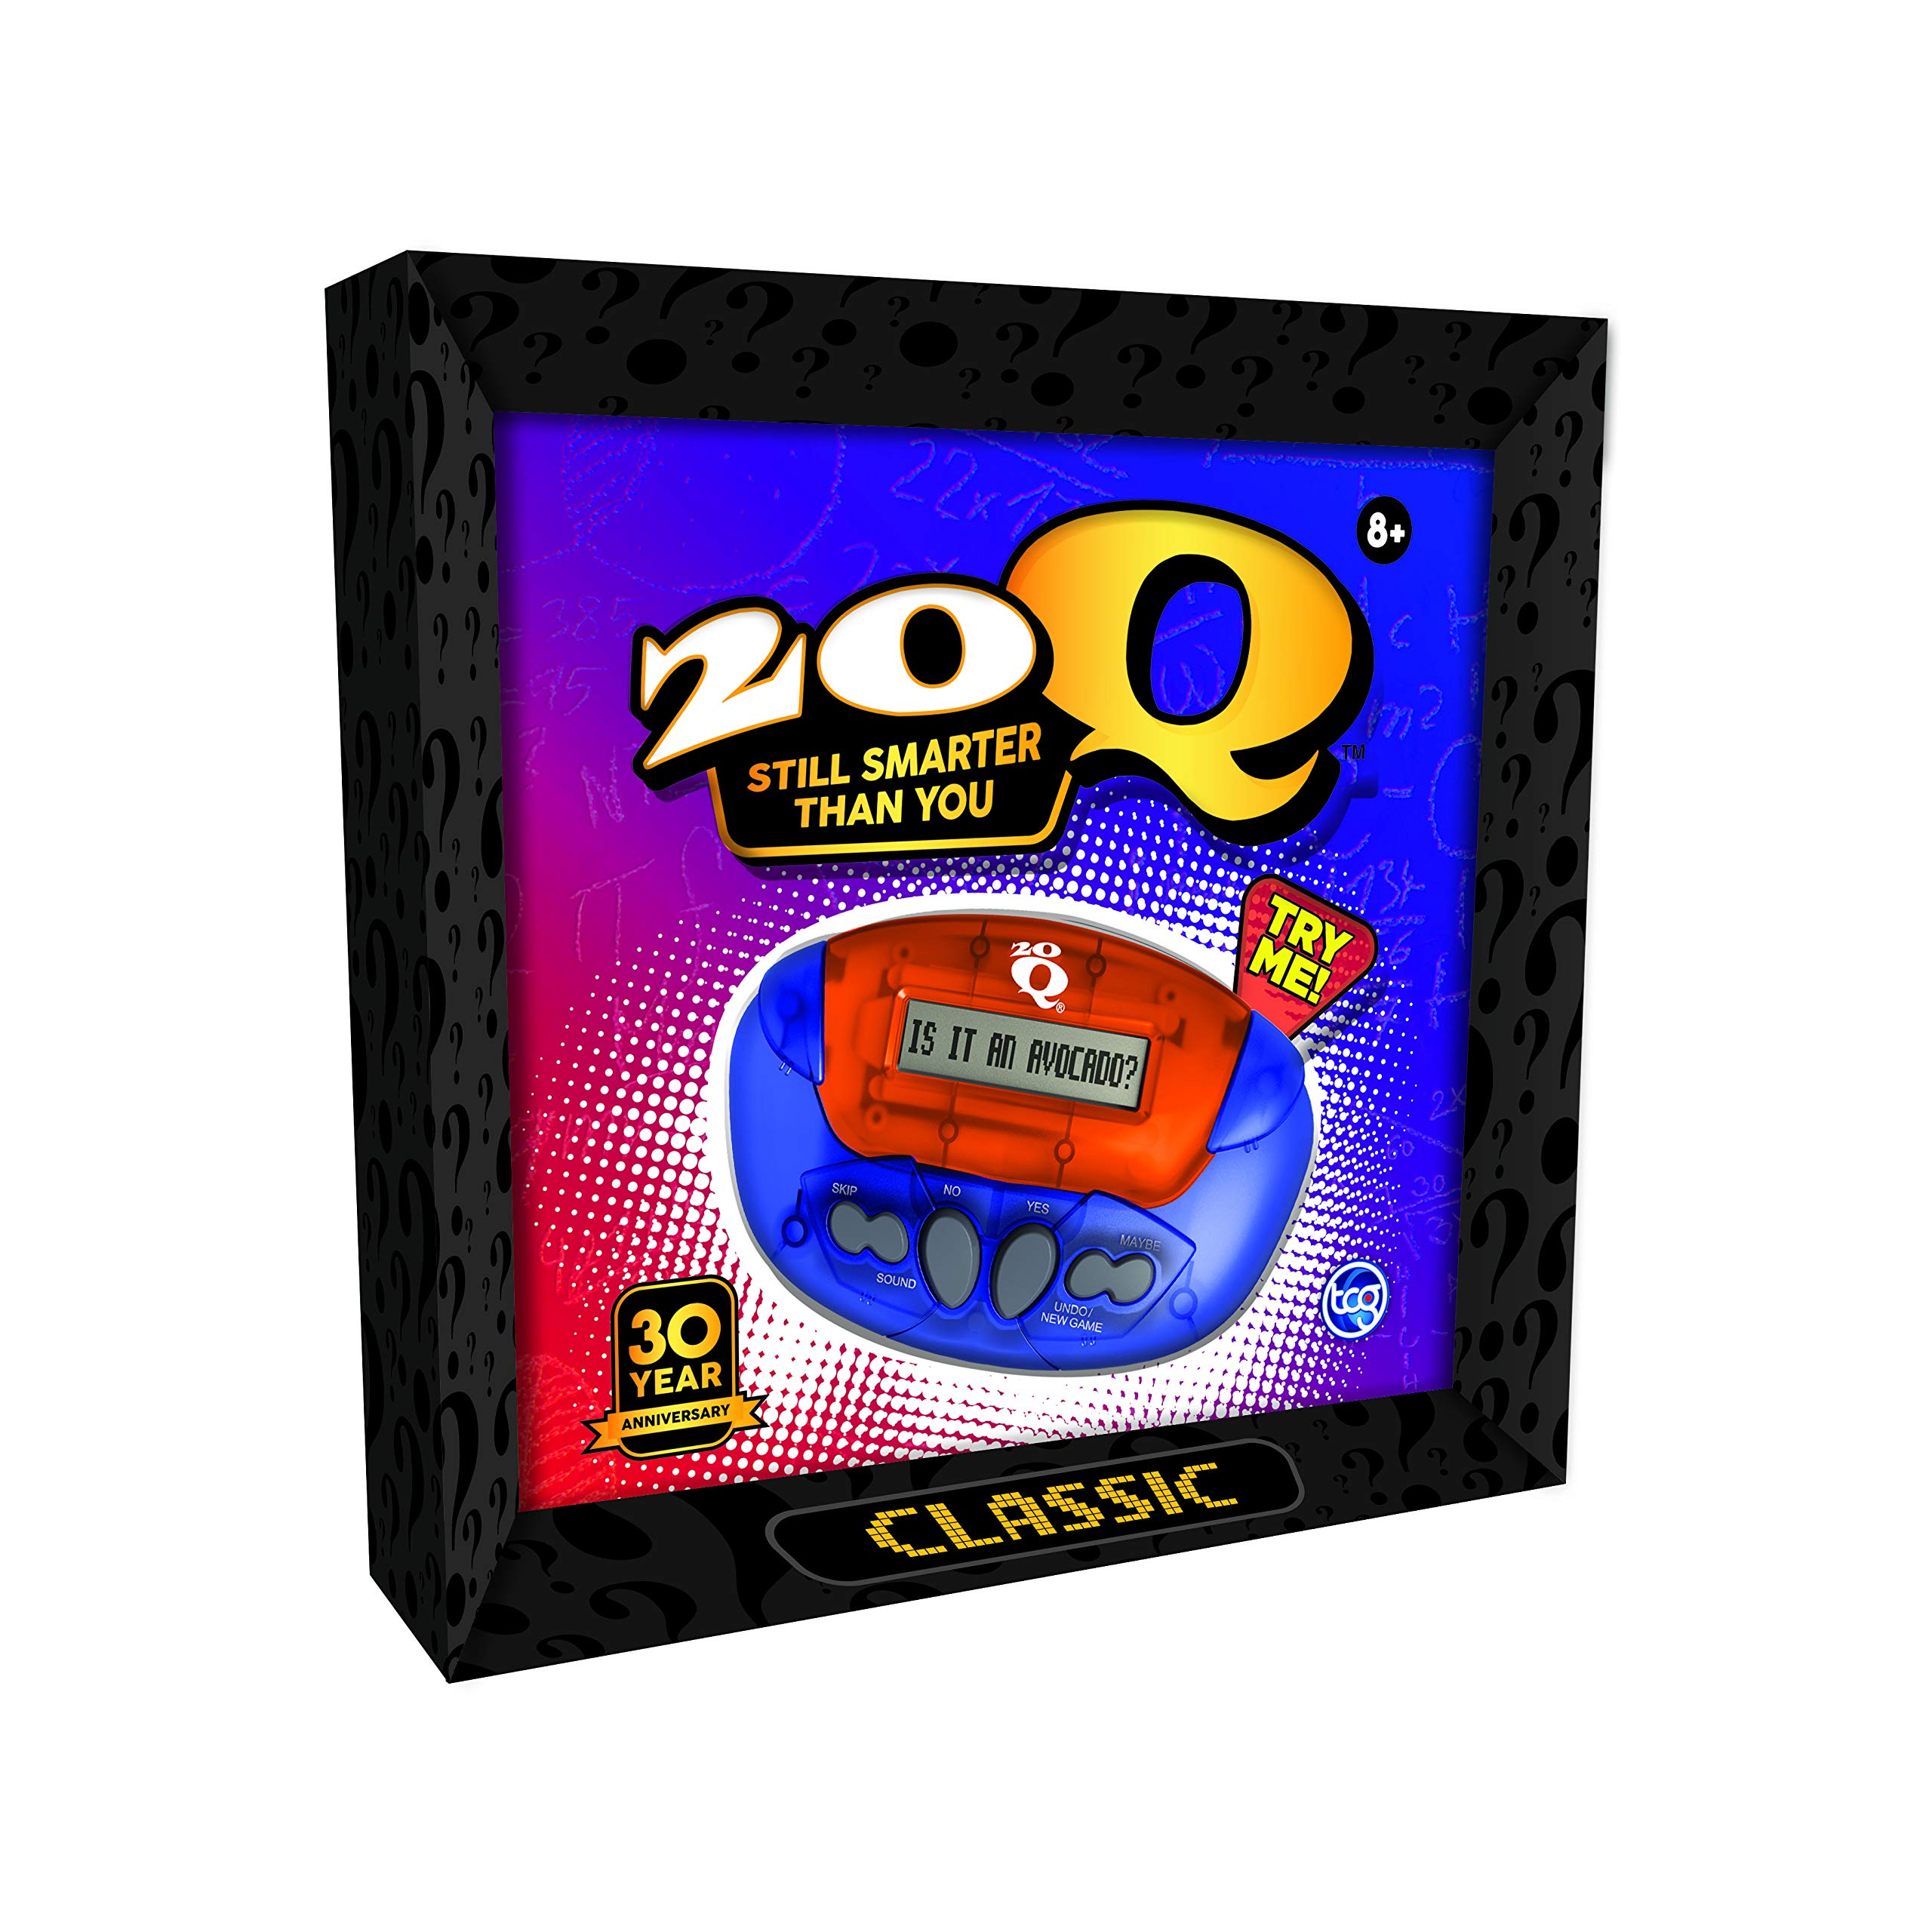 TCG Toys 20Q, Classic Orange/Blue by TCG Toys